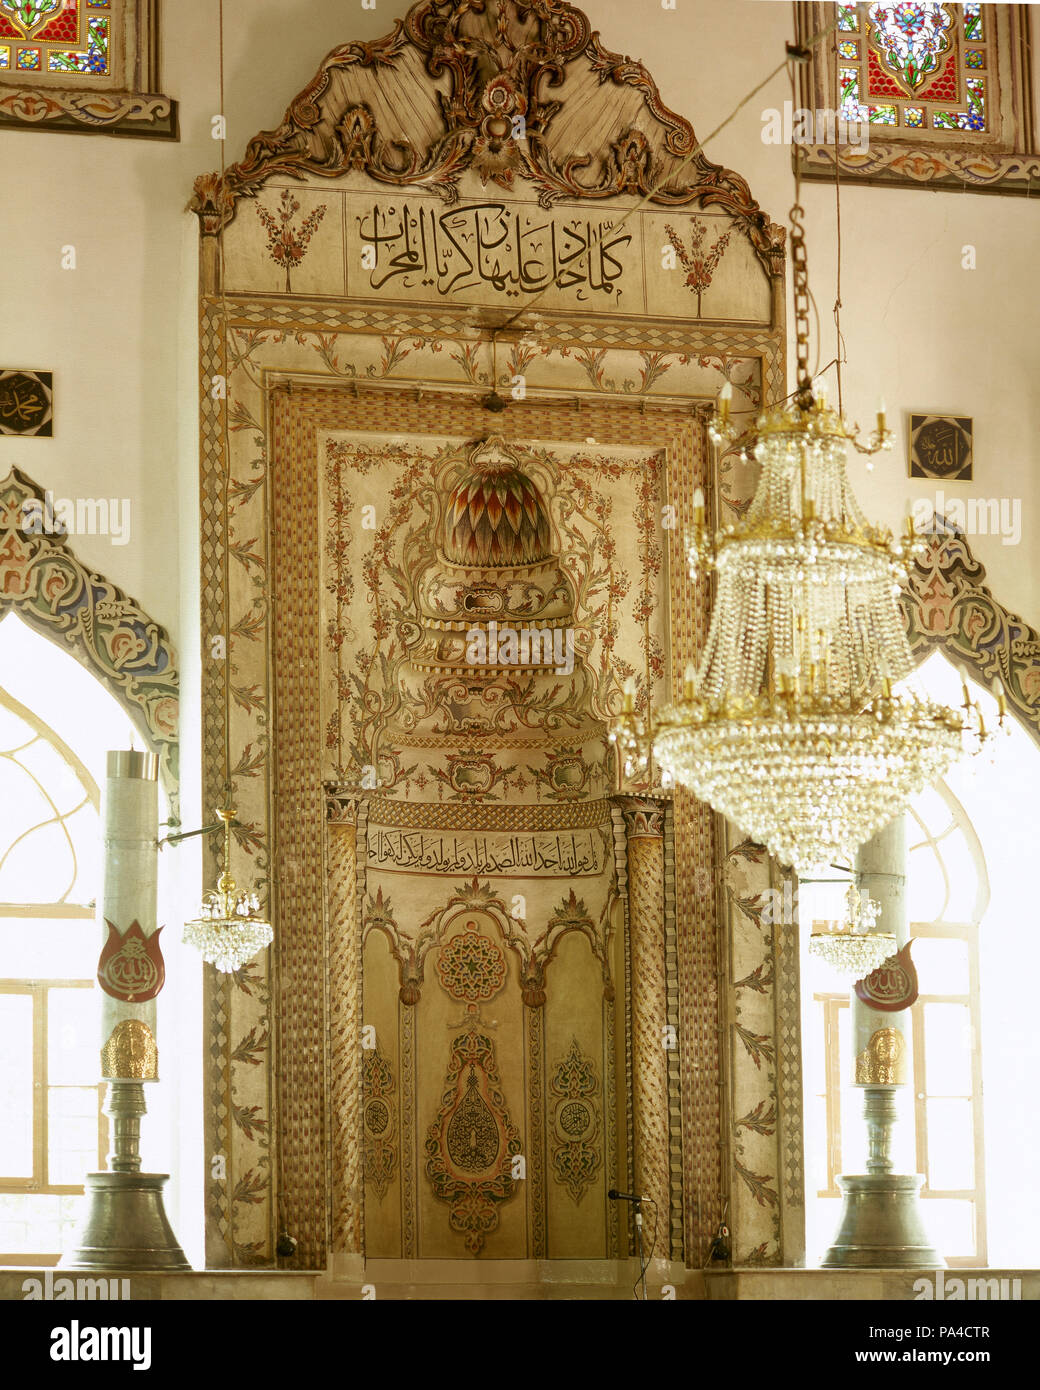 Turkey. Asia Minor. Bursa. Muradiye Complex. Muradiye Mosque. Its construction was ordered by the sultan Murat II (reigned 1421-1451, and was completed in 1426. Inside view. Mihrab carved in stone. - Stock Image